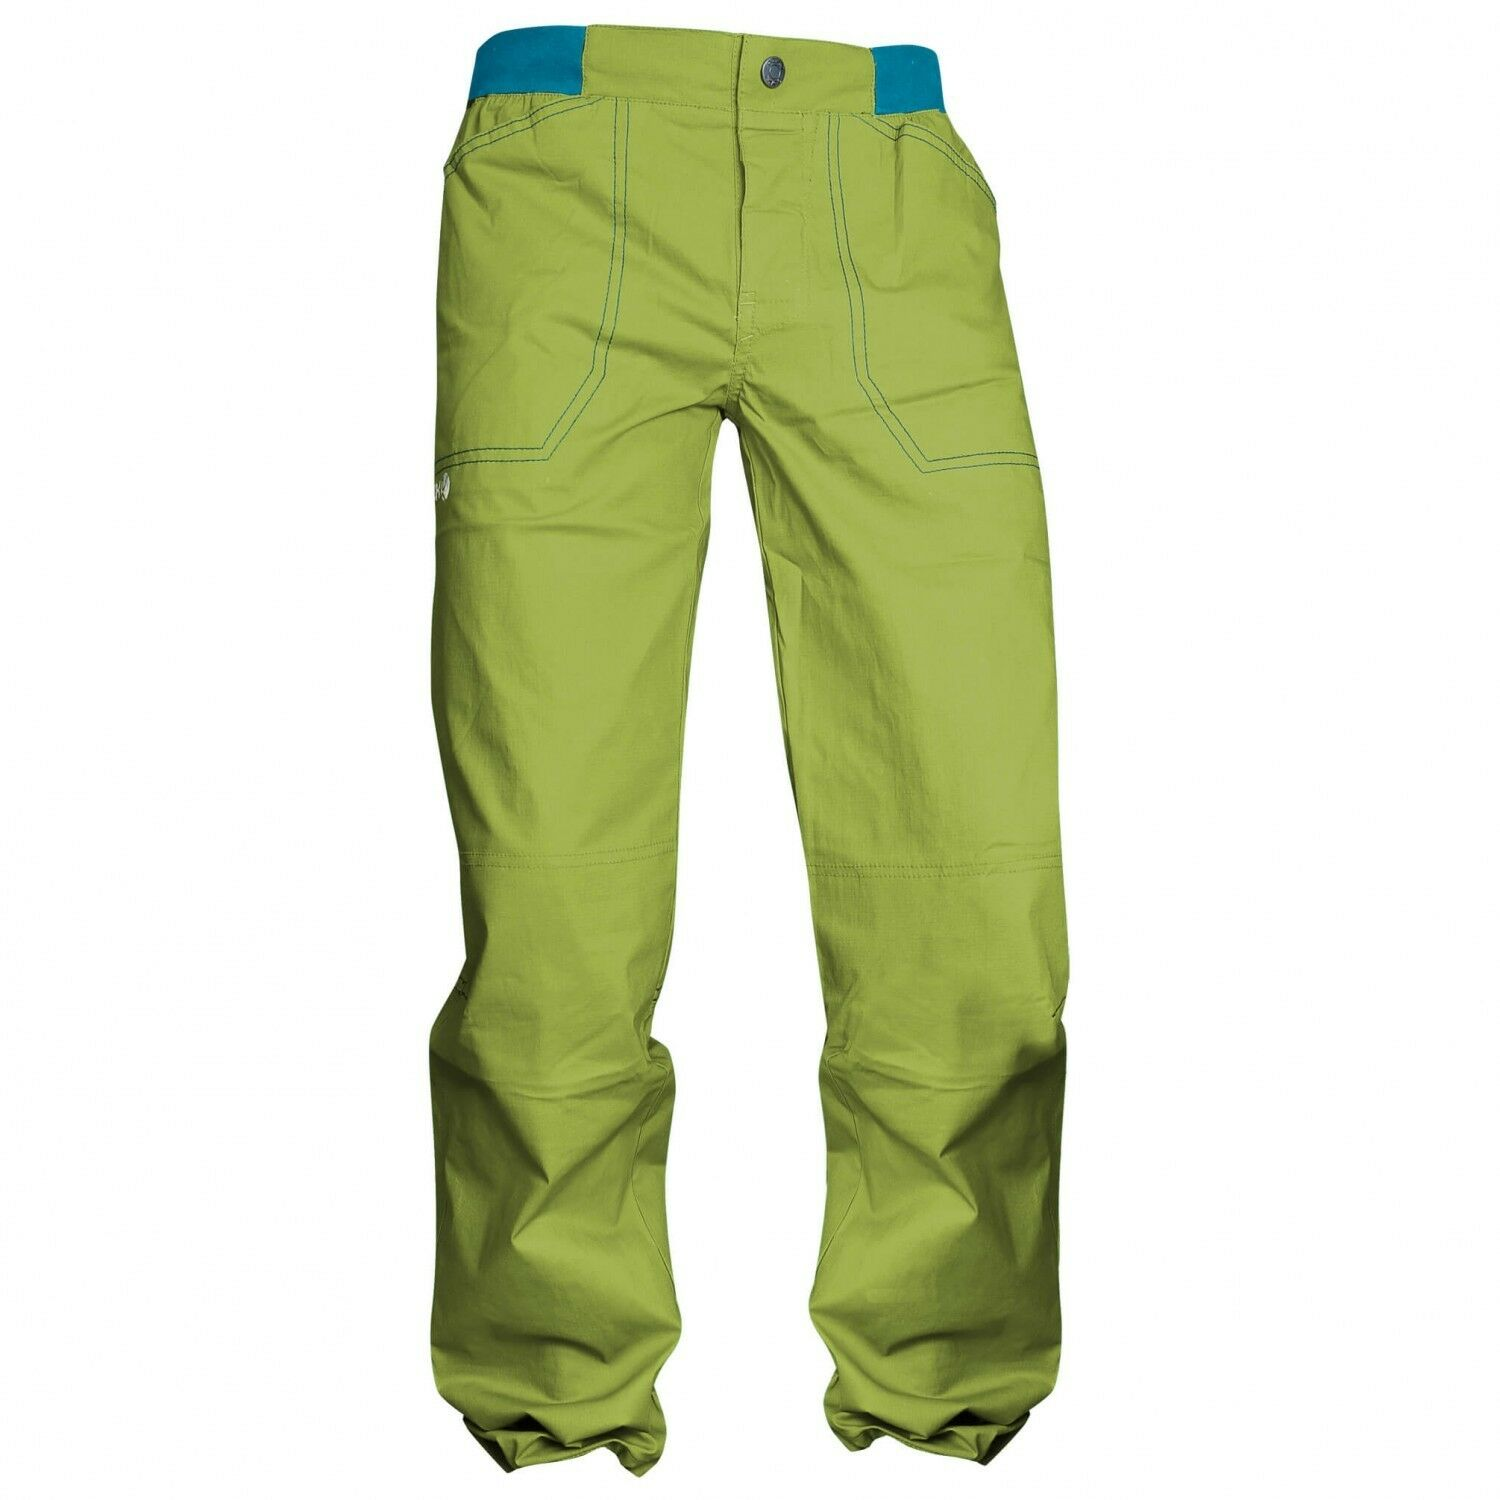 Abk Zenith V2 Pant  Men Climbing Pants for Men Olive SIZE XS  top brands sell cheap